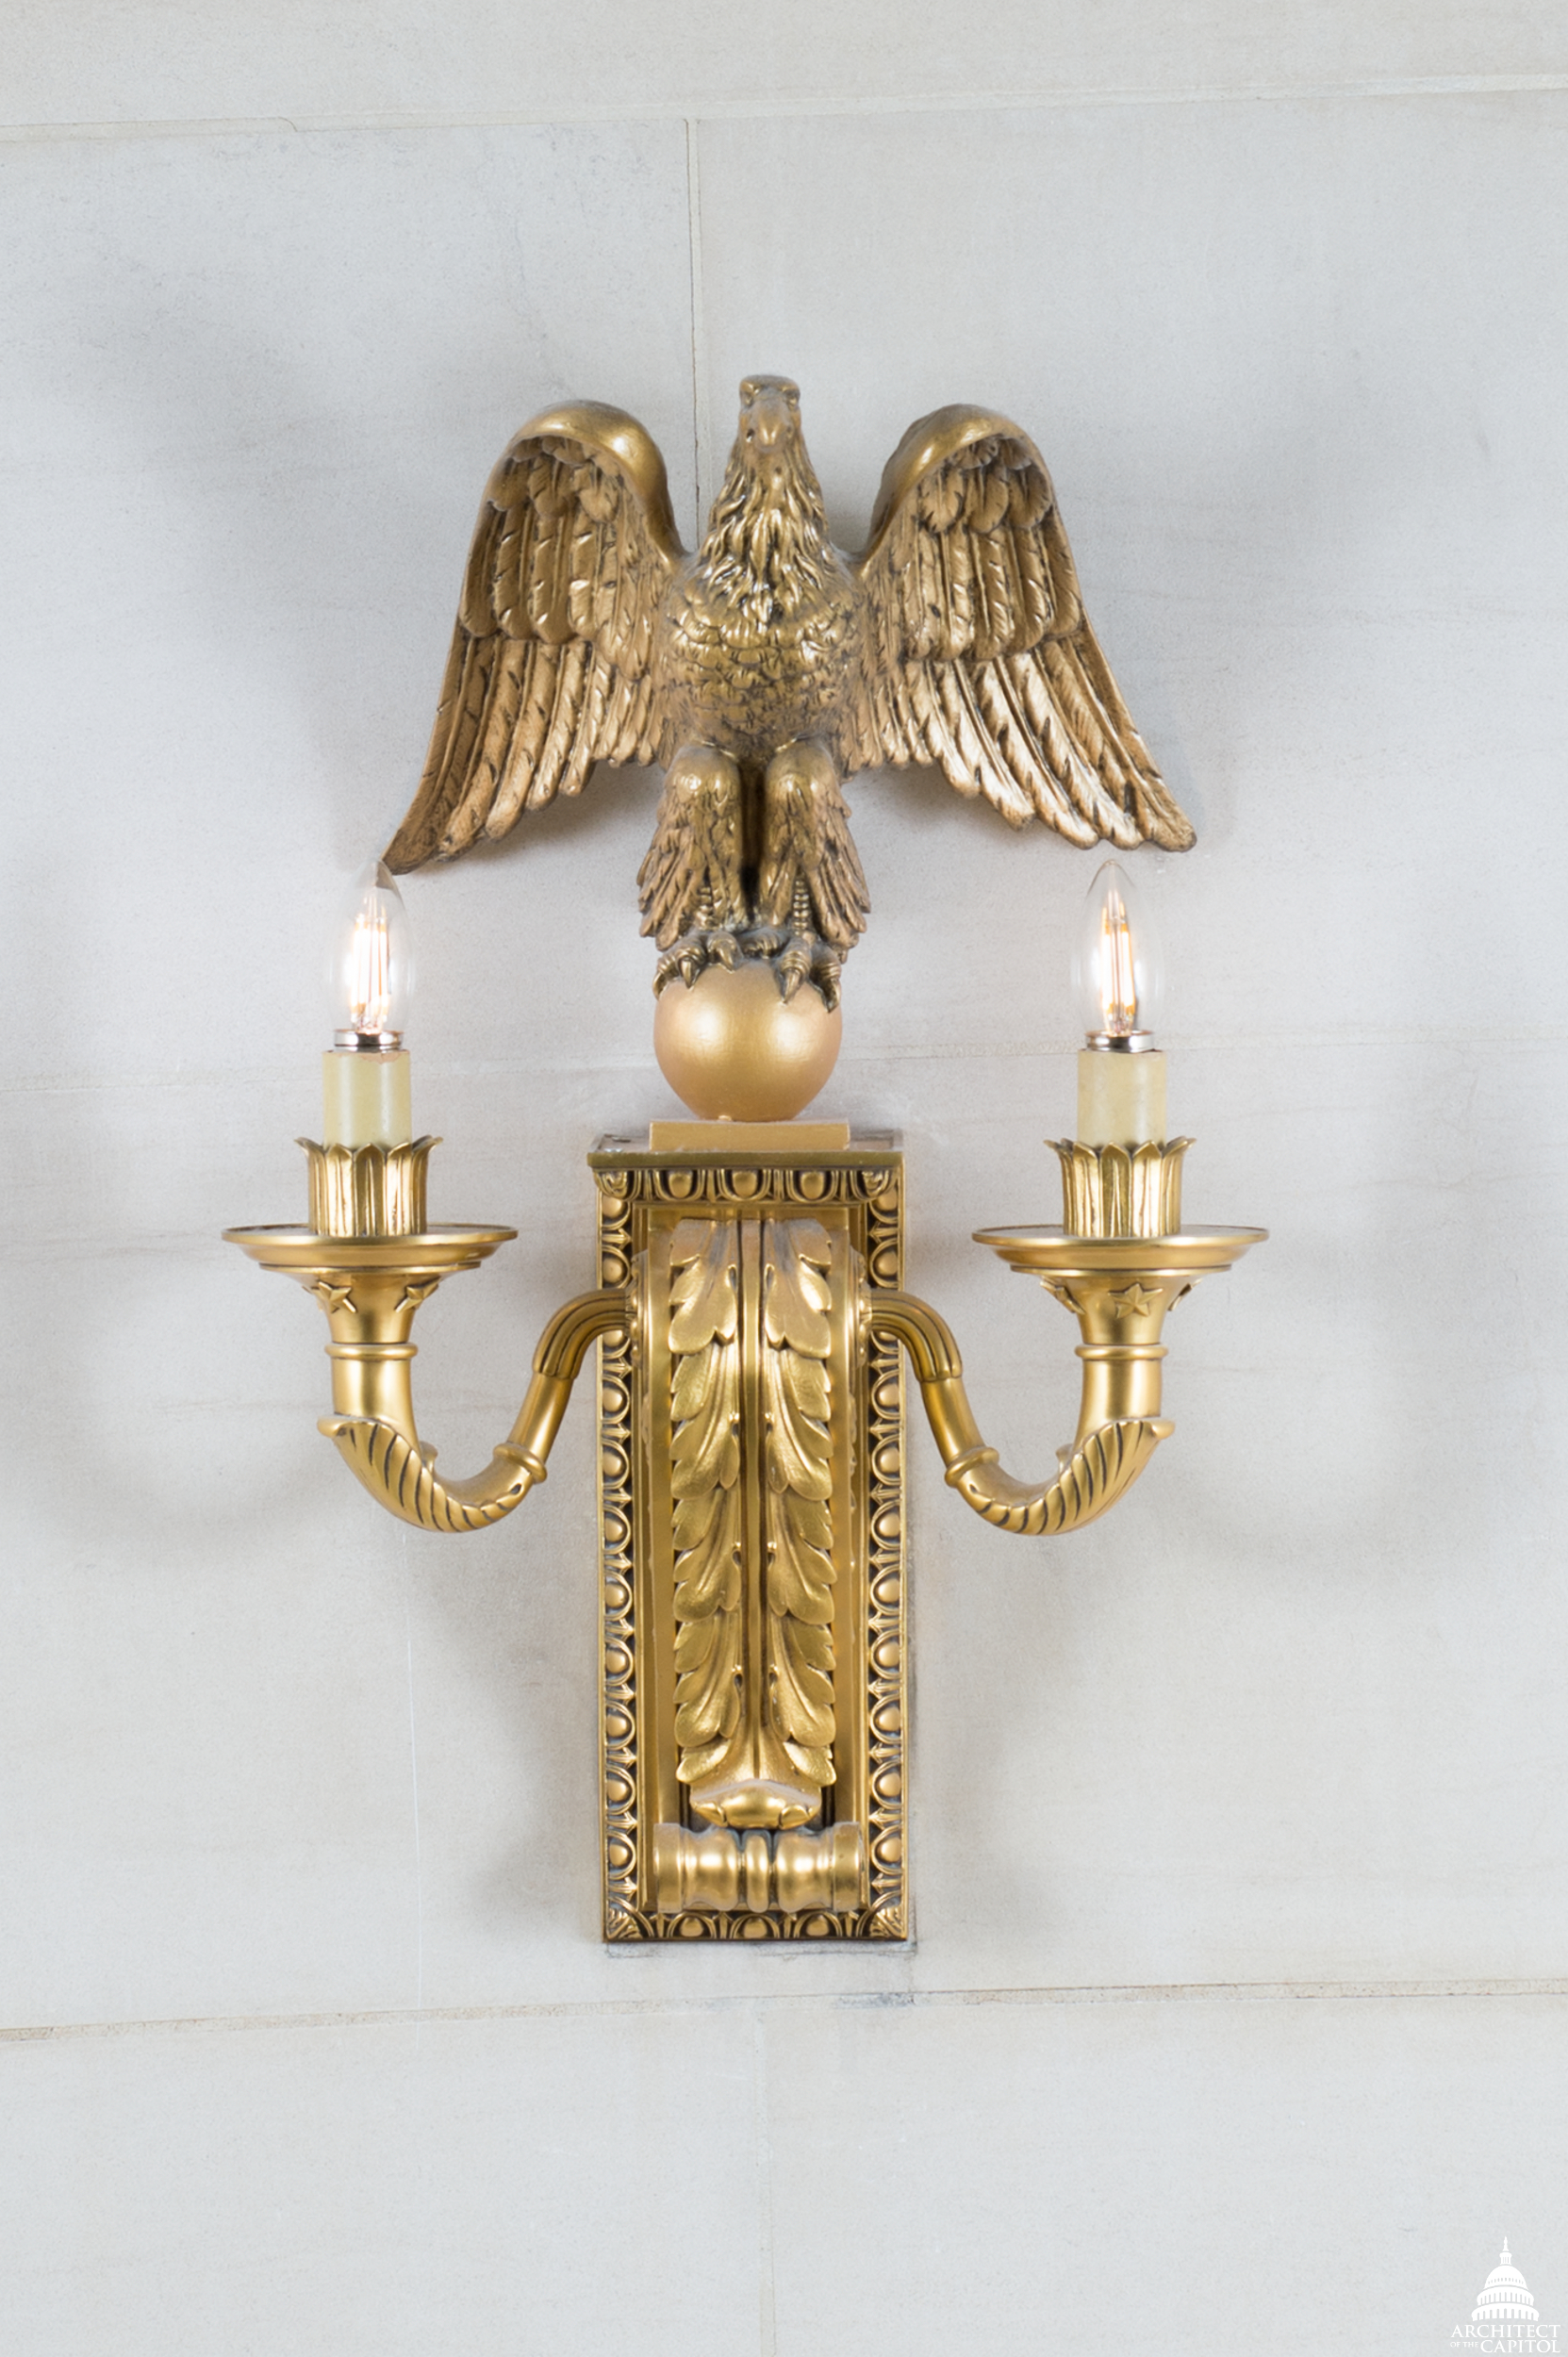 Eagle sconce or wall bracket on staircase walls in the Longworth Building.